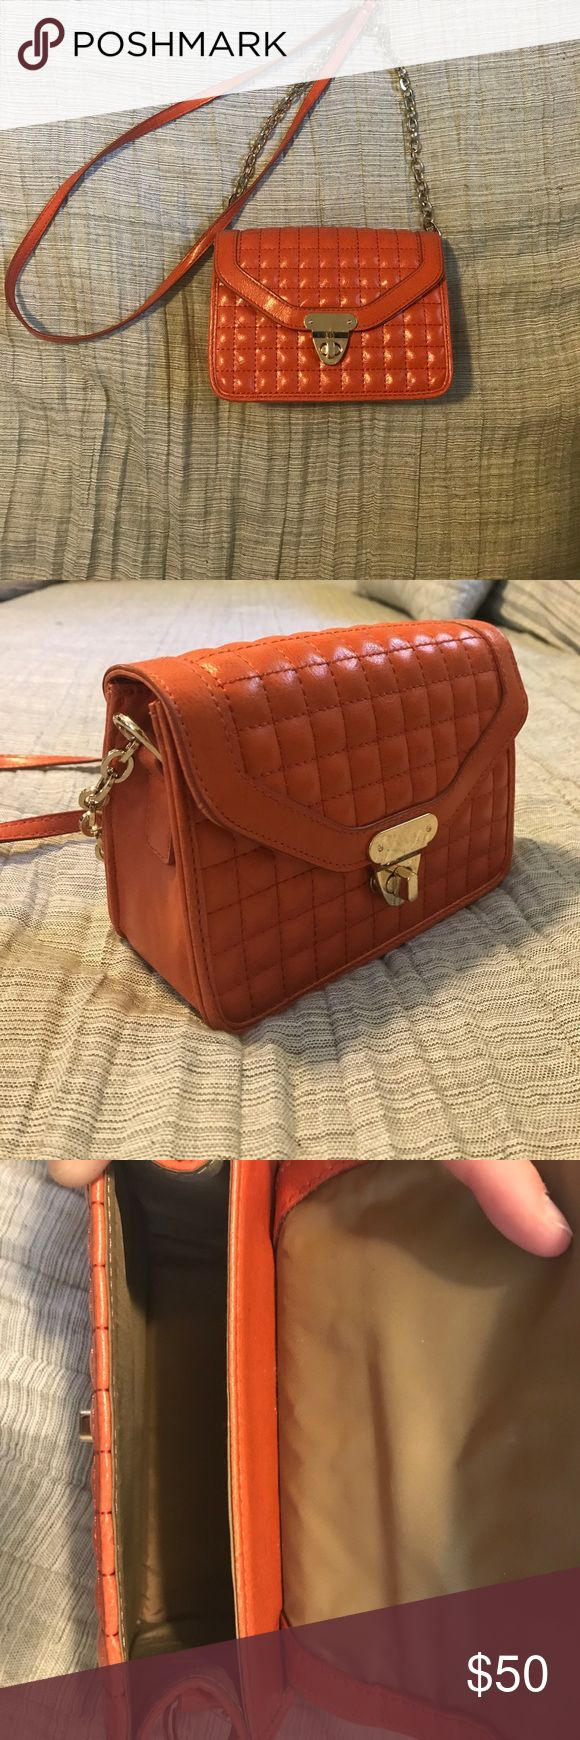 Banana Republic Purse Small Over the shoulder leather purse. In perfect condition. Banana Republic Bags Crossbody Bags